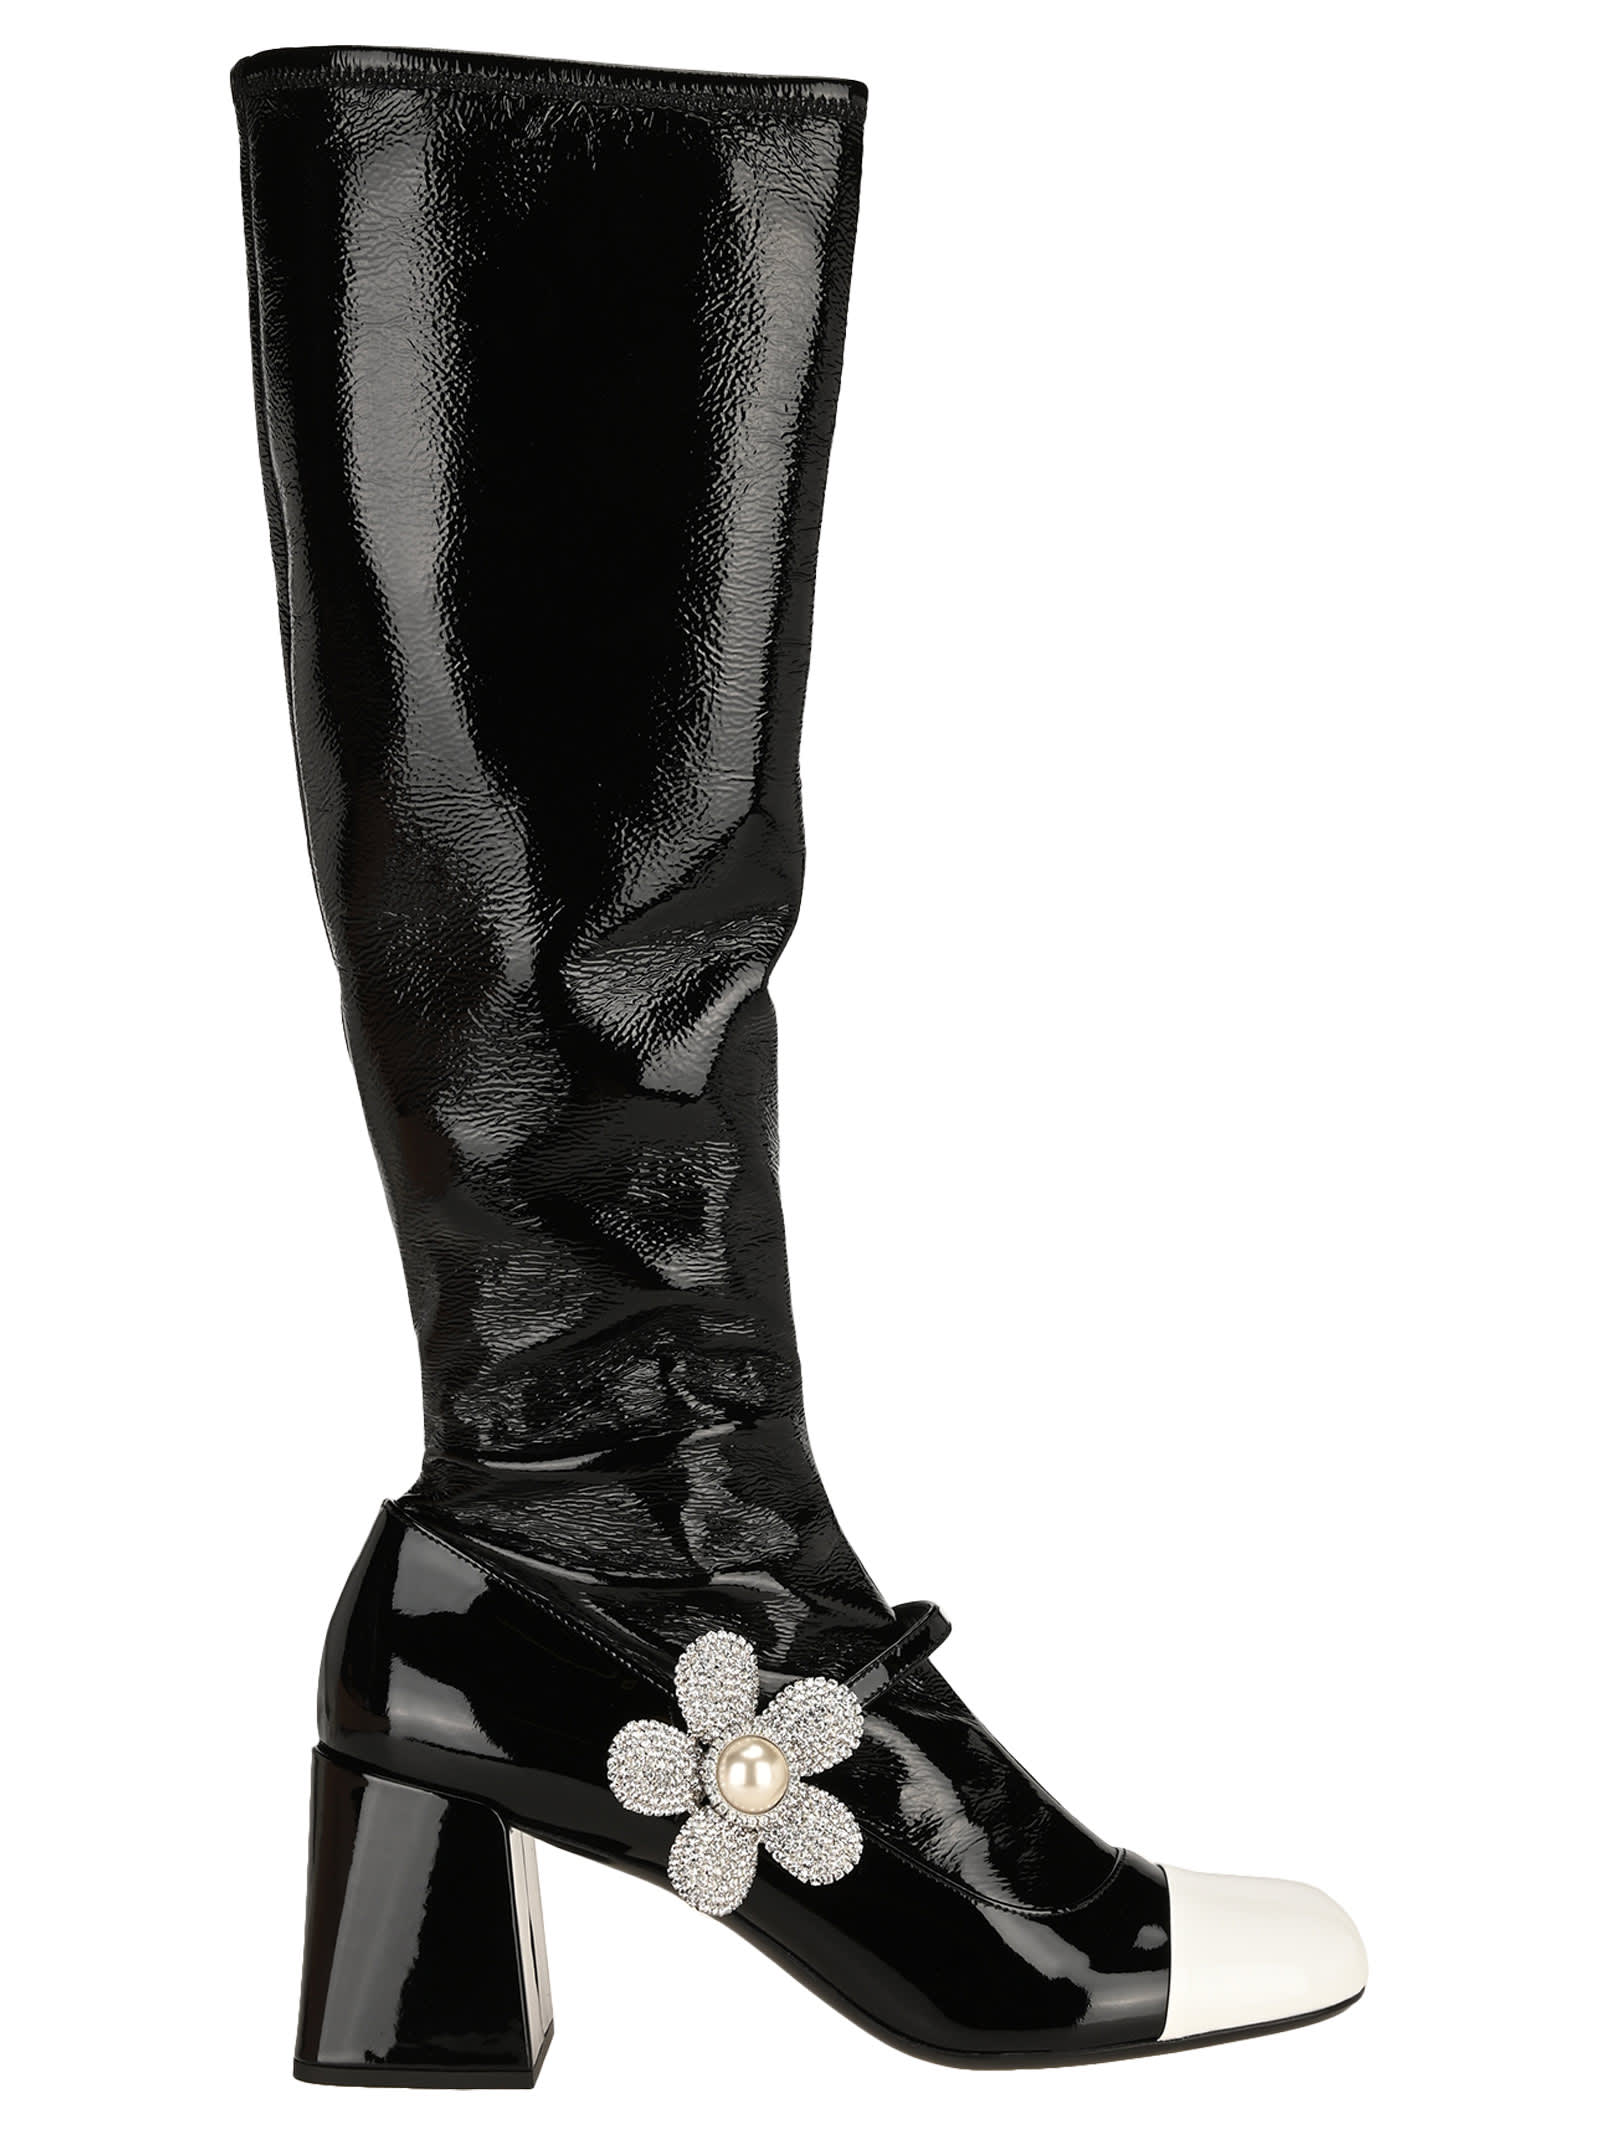 Miu Miu Embellished Patent Leather Boots